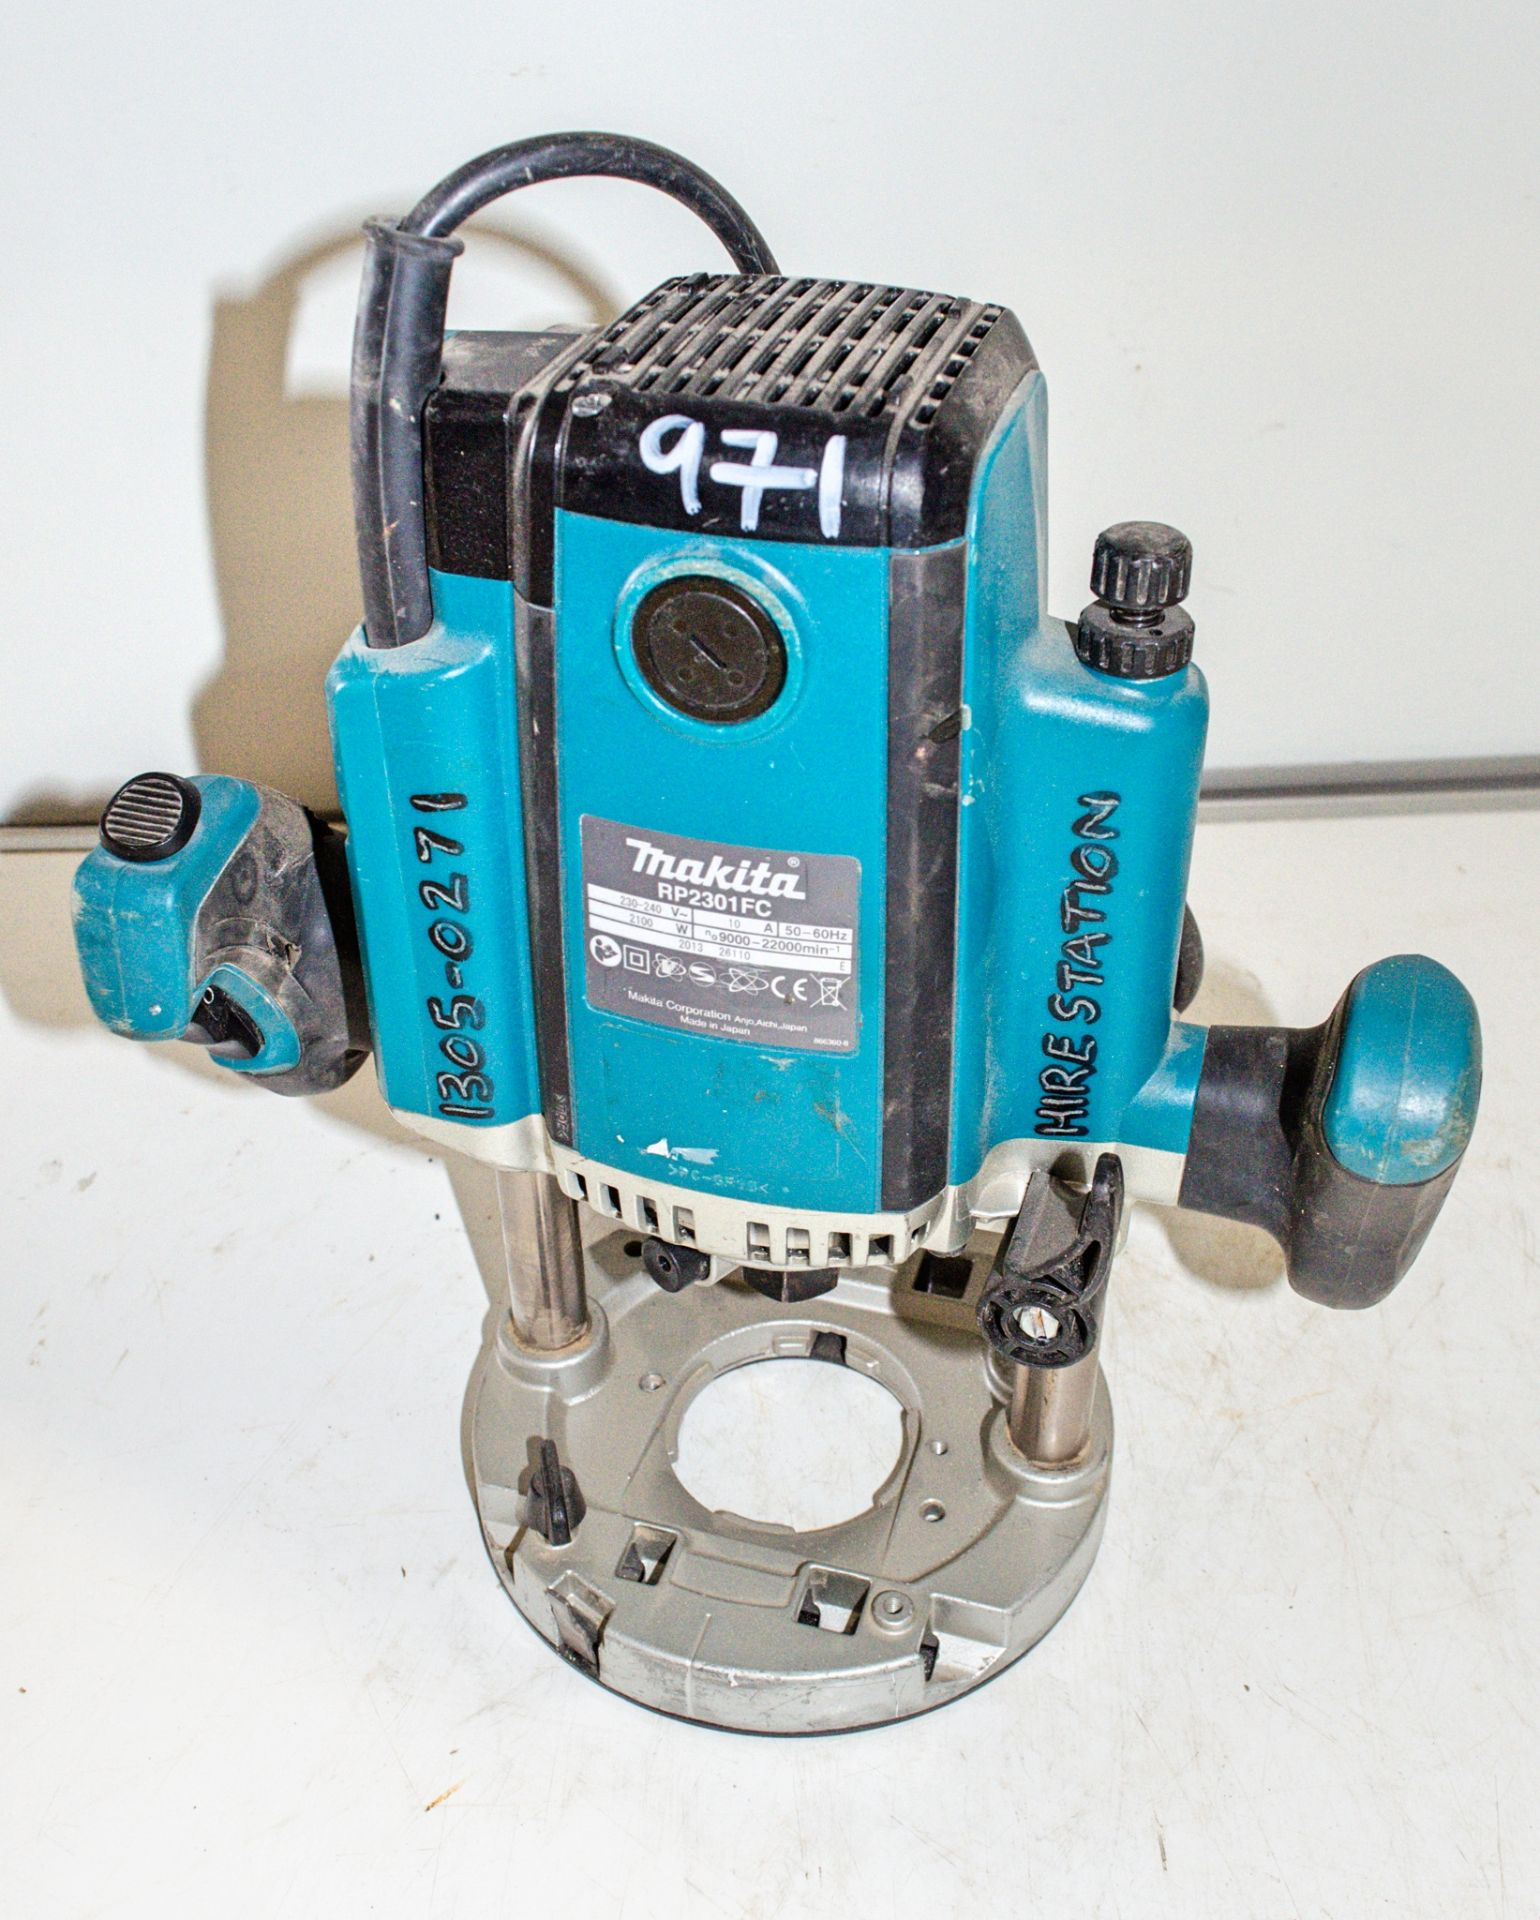 Lot 971 - Makita RP2301 110v router